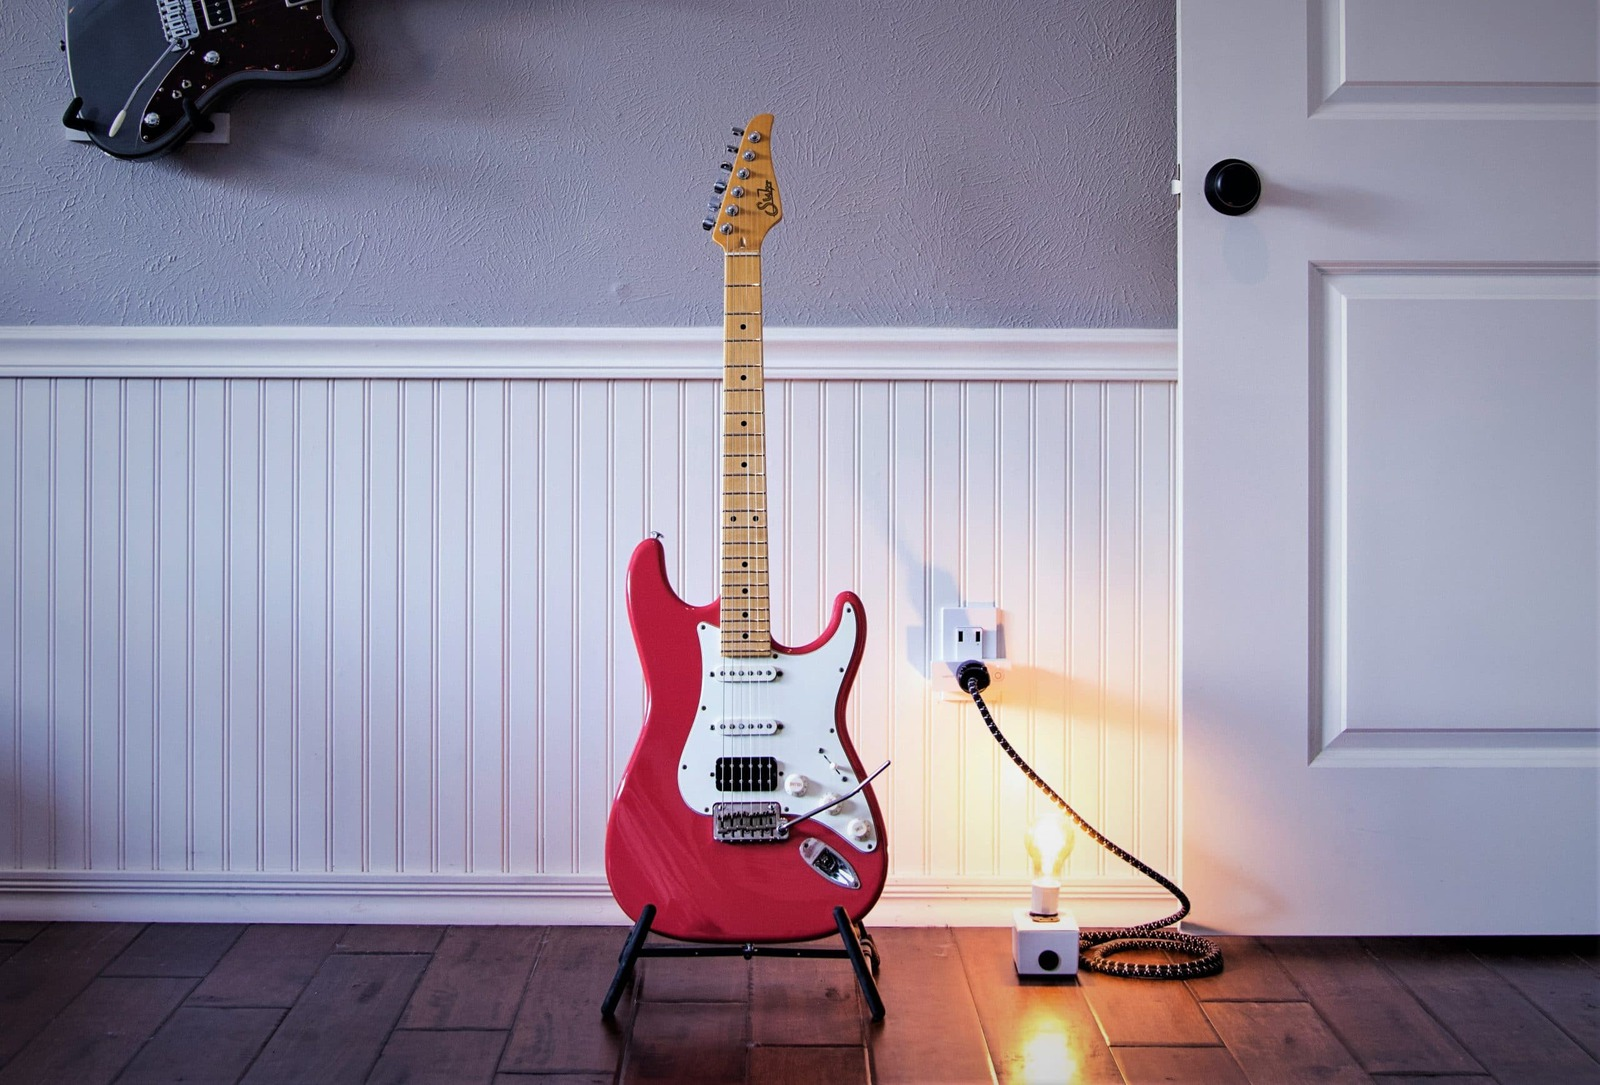 5 Best Guitar Stands for Stratocasters in 2021 – Buyer's Guide